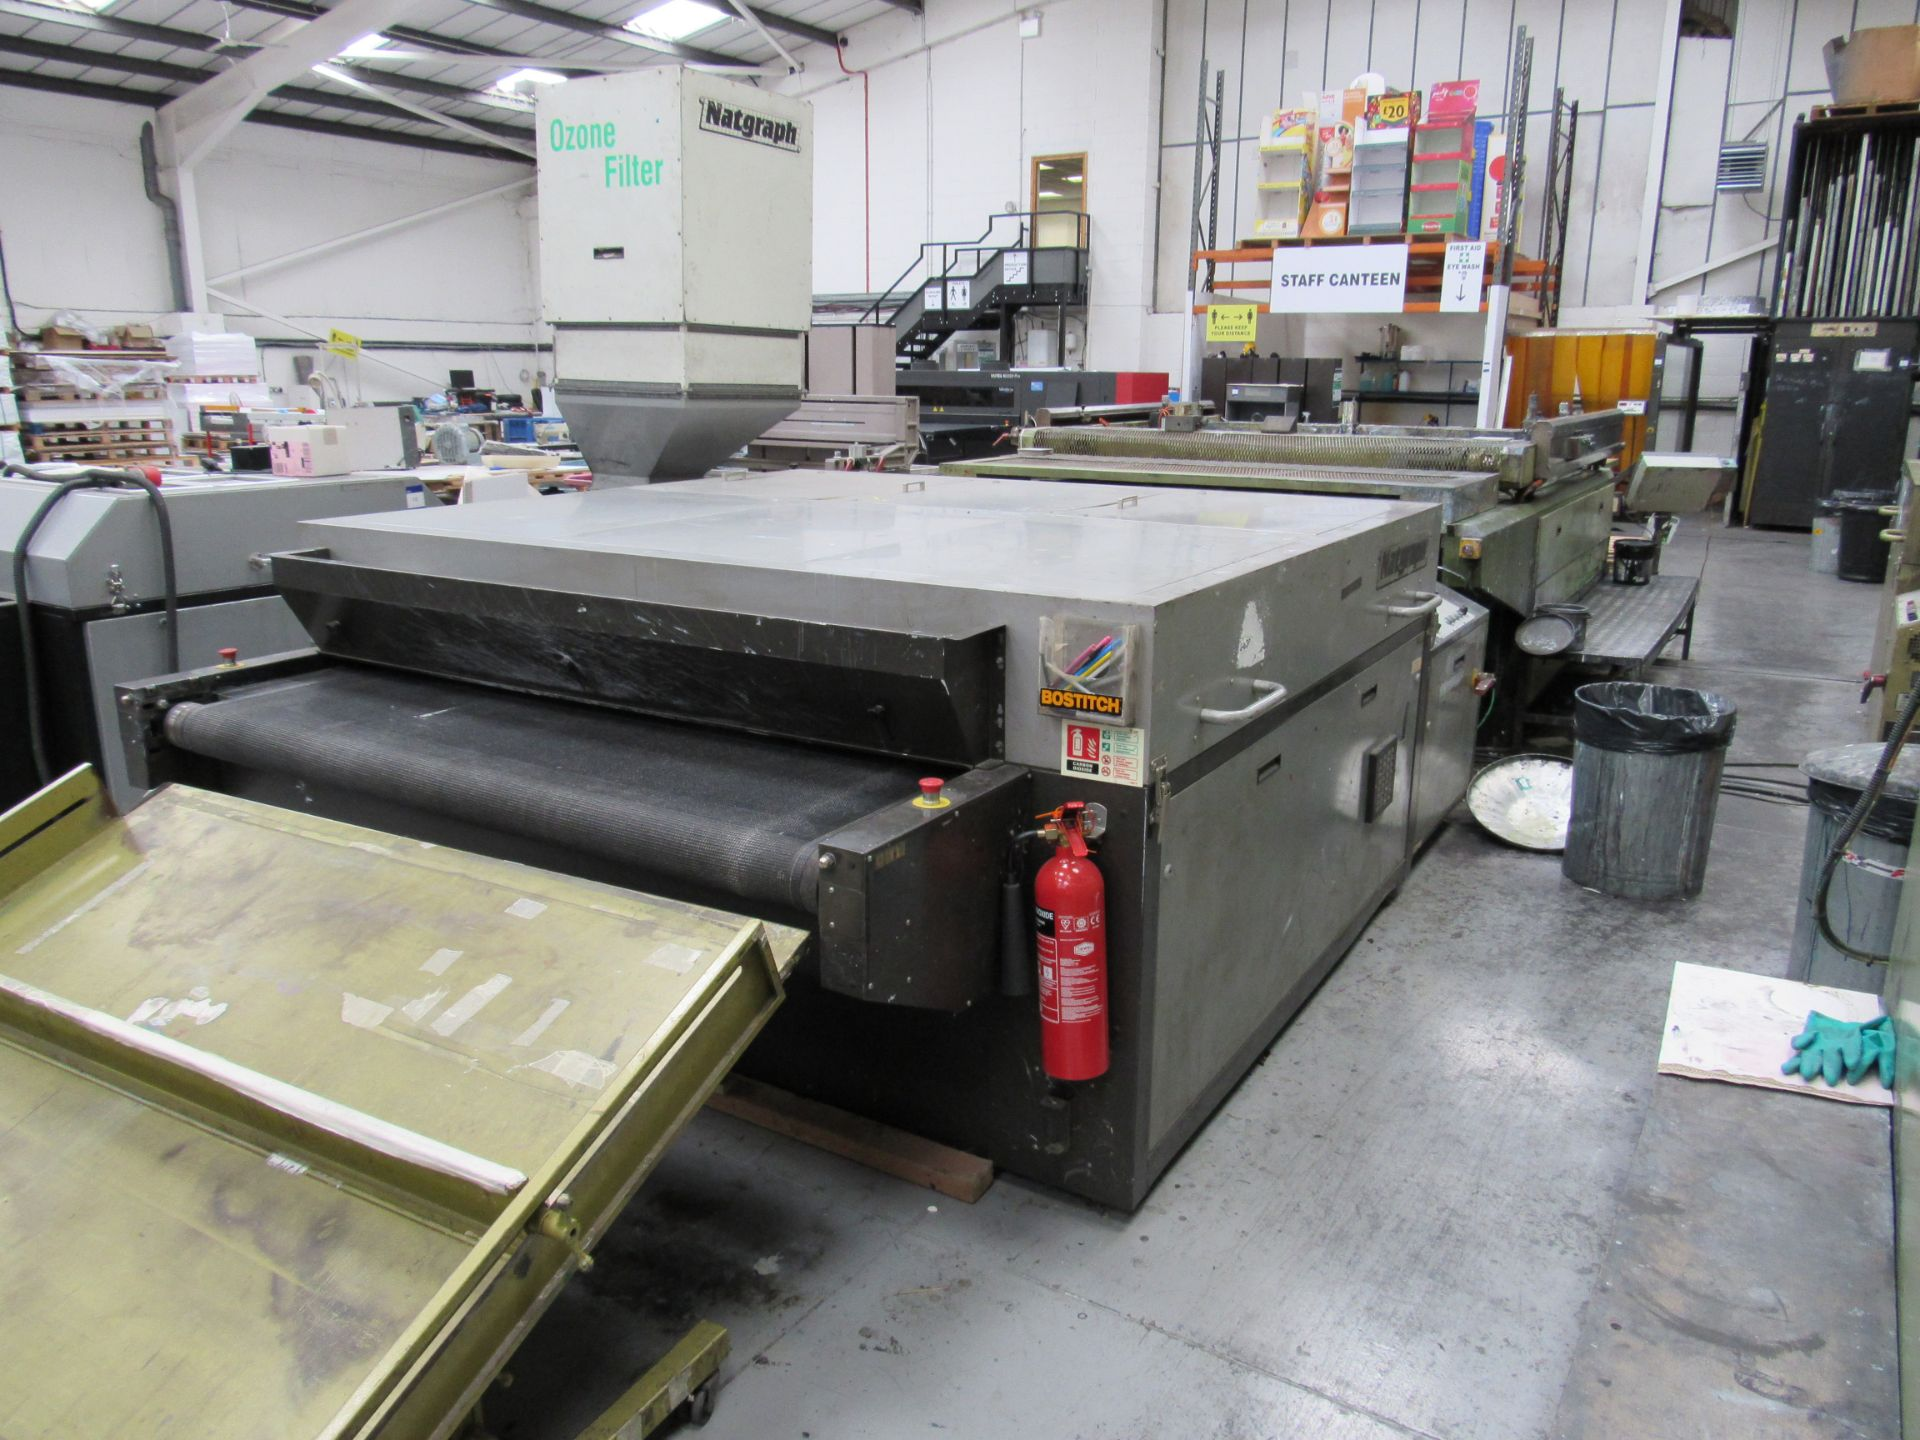 Serfast Screen Printer with Natgraph 170-02.01 UV Dryer, Serial Number 337-02-04, 2002 - Image 13 of 13